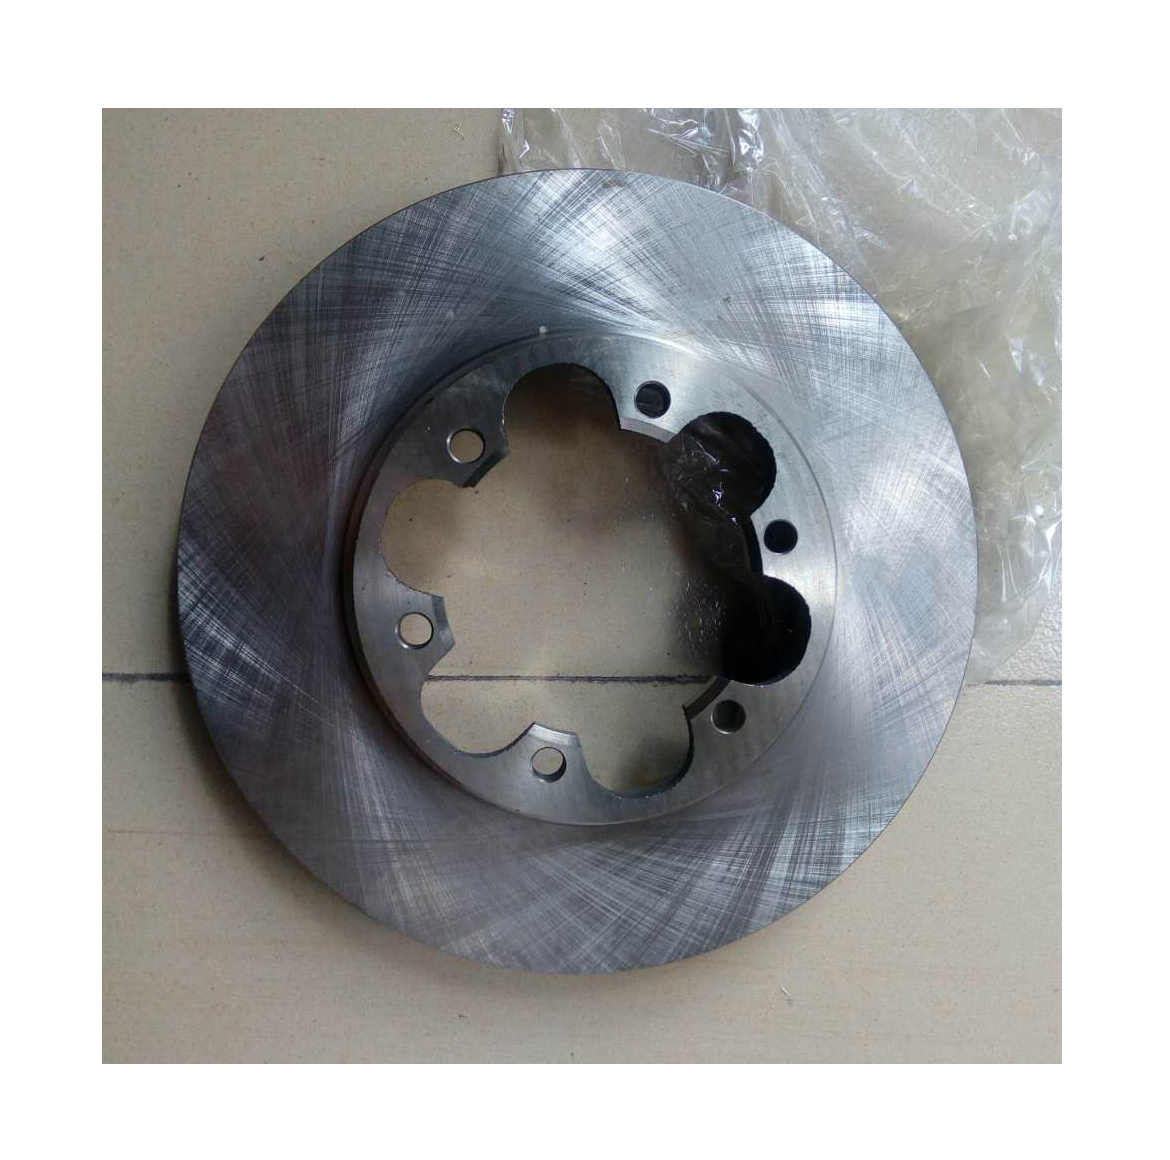 Auto-onderdelen 43512-26190 Brake System Rotor Disc voor HIACE/COMMUTER V